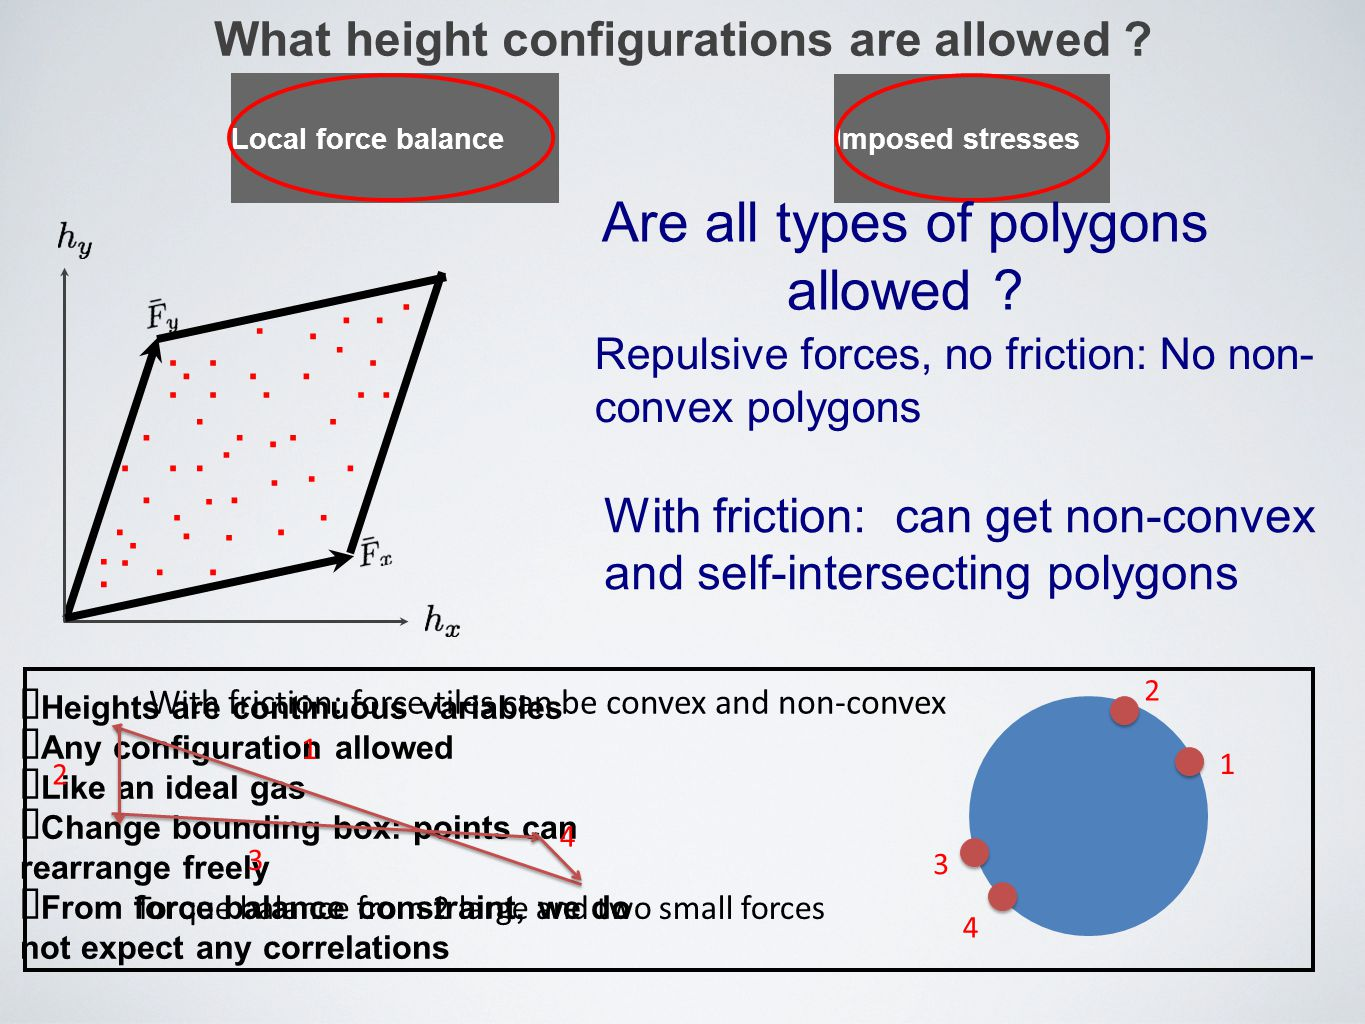 What height configurations are allowed